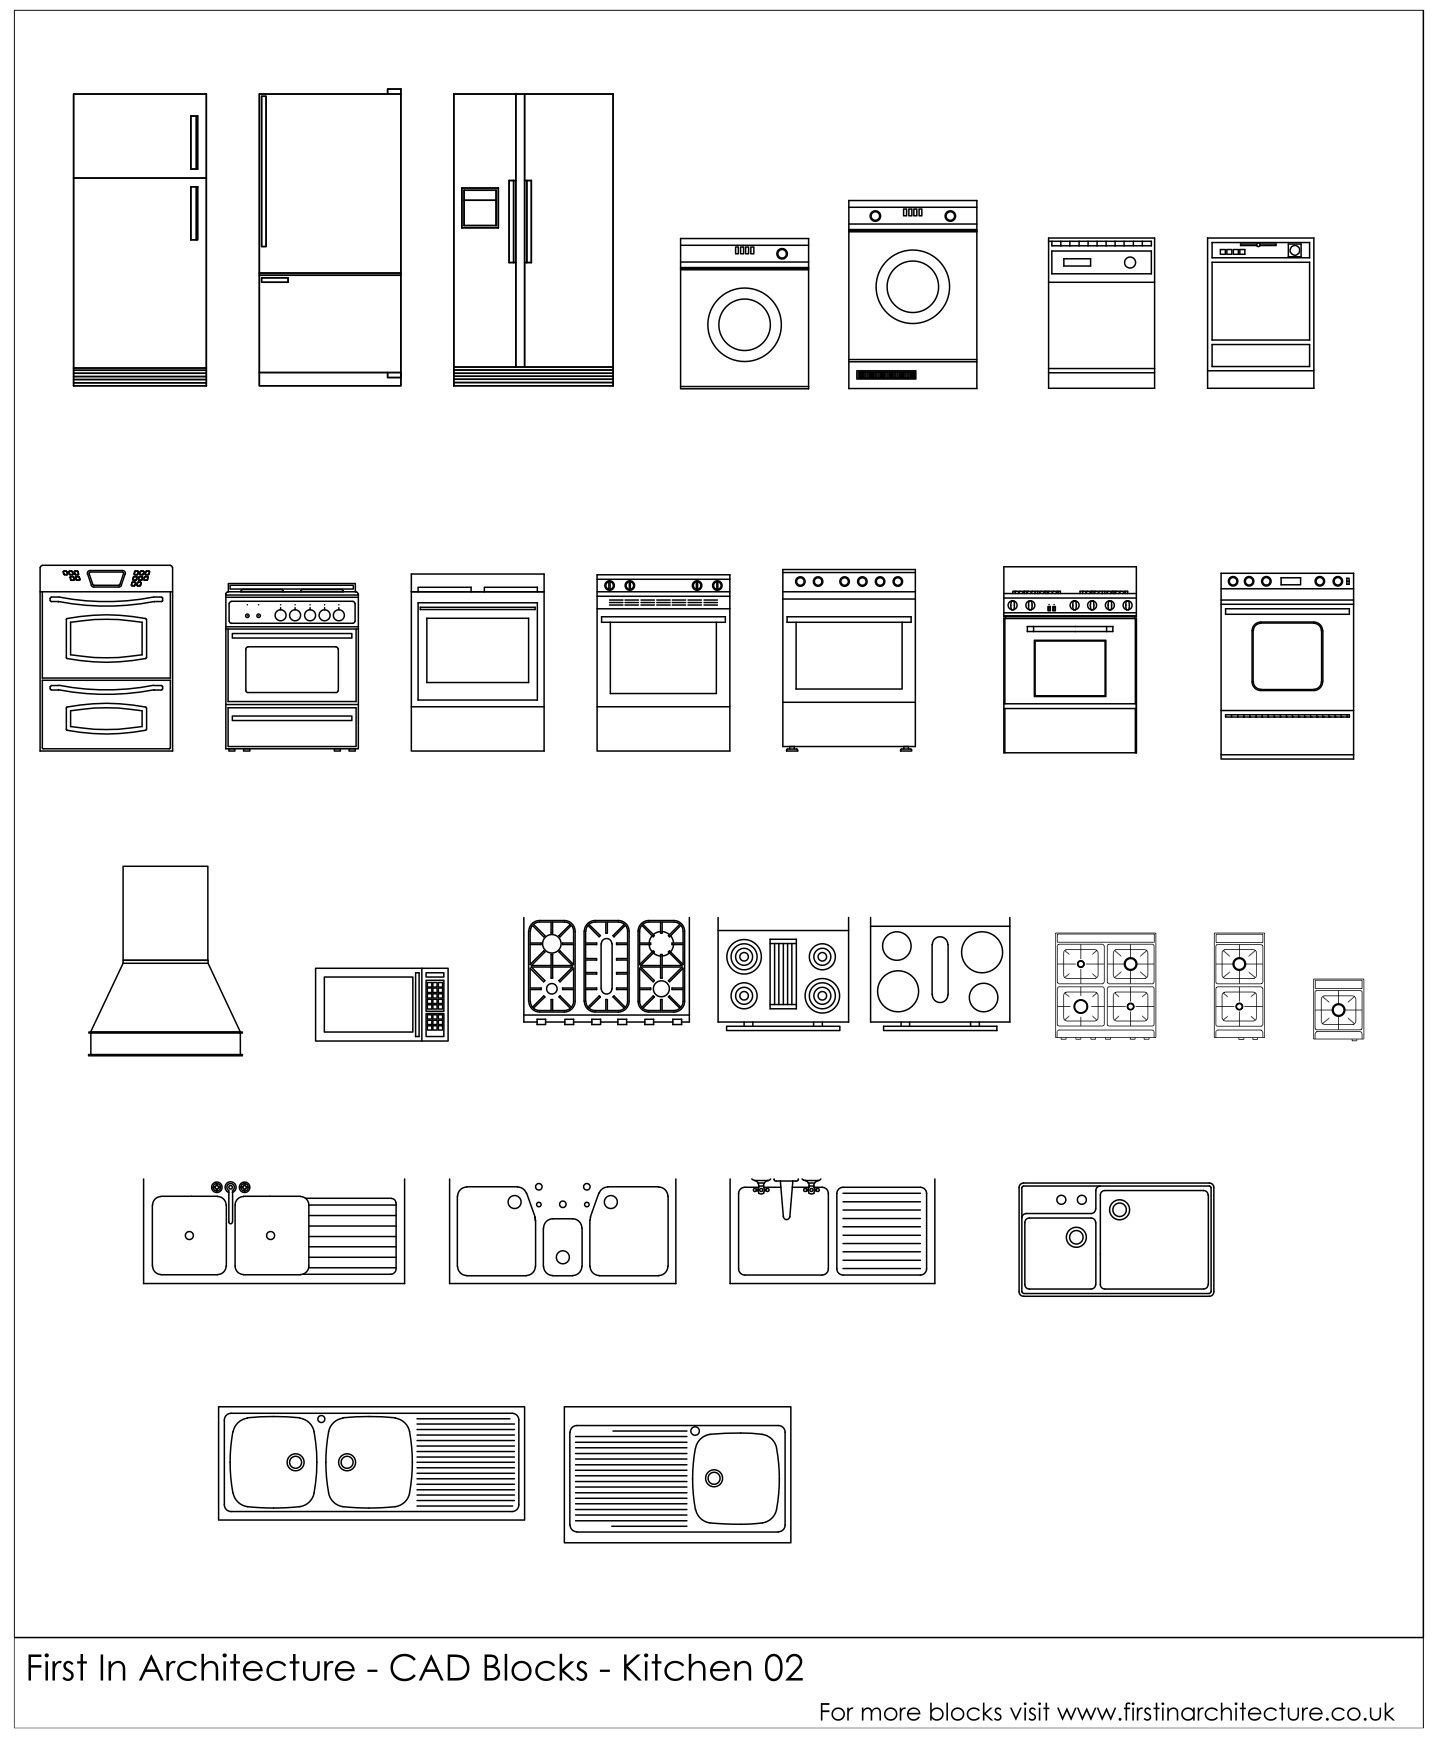 Uncategorized Kitchen Appliance Industry archblocks autocad refrigerator block symbols drafting free cad blocks kitchen appliances 02 first in architecture